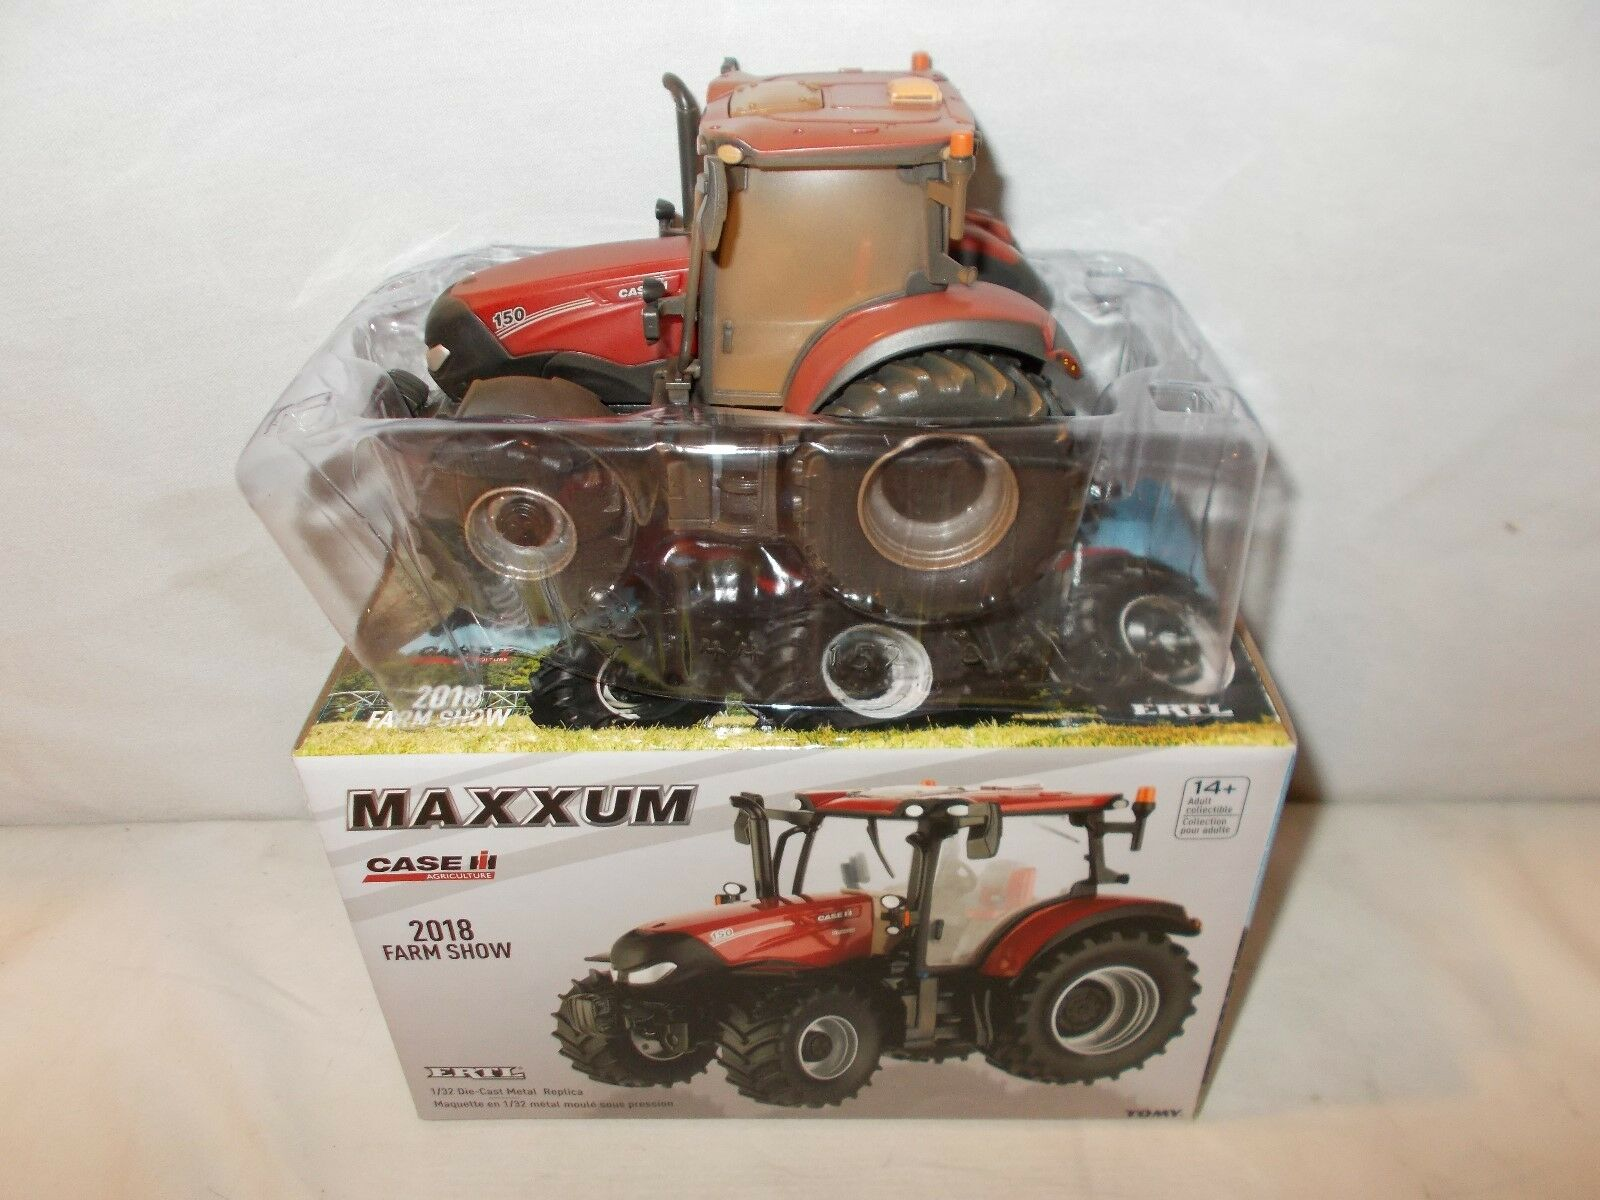 CASE IH 150 Maxxum 2018 Farm Show Dusty MUDDY EDITION BY ERTL échelle 1 32nd